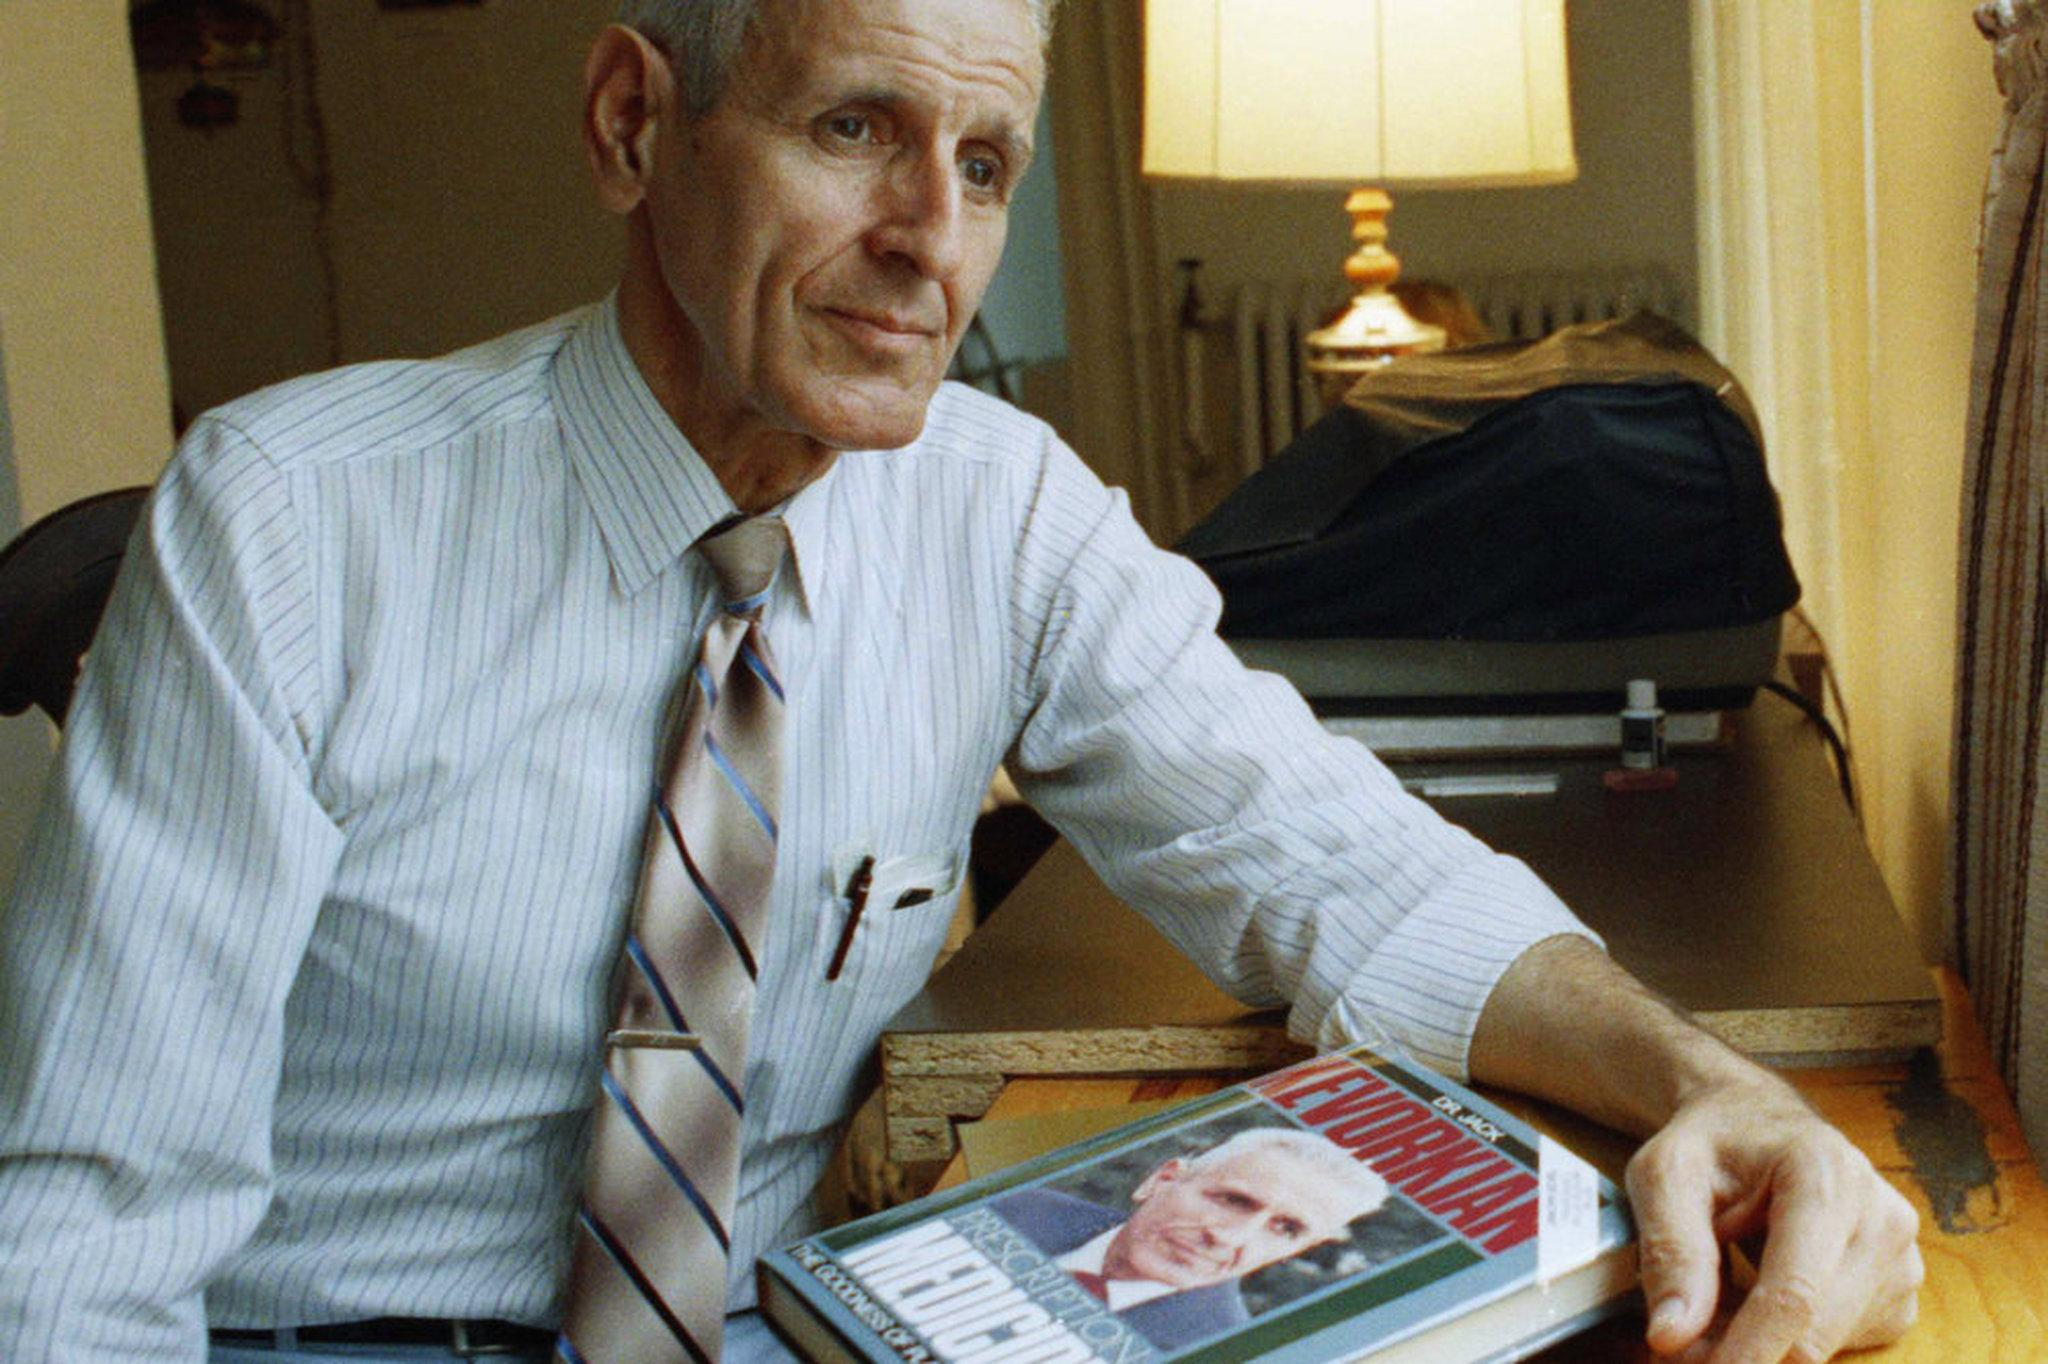 the case of dr jack kevorkian and the assisted suicide in the united states Dr jack kevorkian, the assisted suicide advocate, died friday at 83 supporters say he was a compassionate caregiver who paid a steep price for helping chronically and terminally ill patients end.